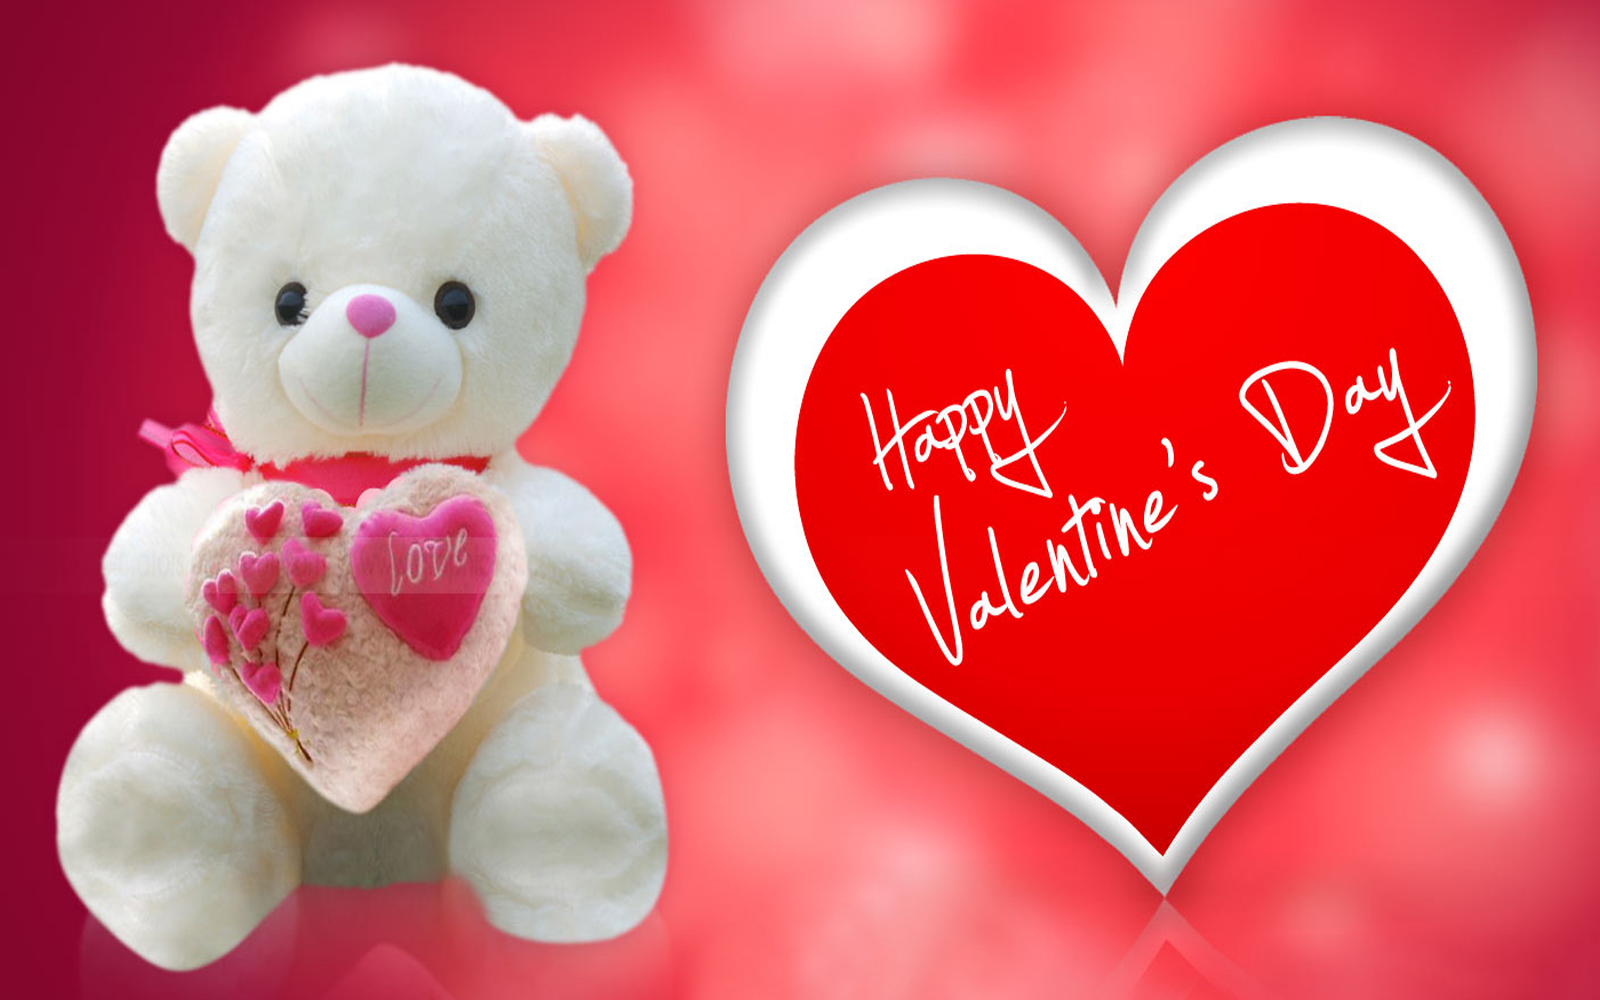 happy valentines day wallpaper free 50 wallpapers - Valentine Day Pics For Free